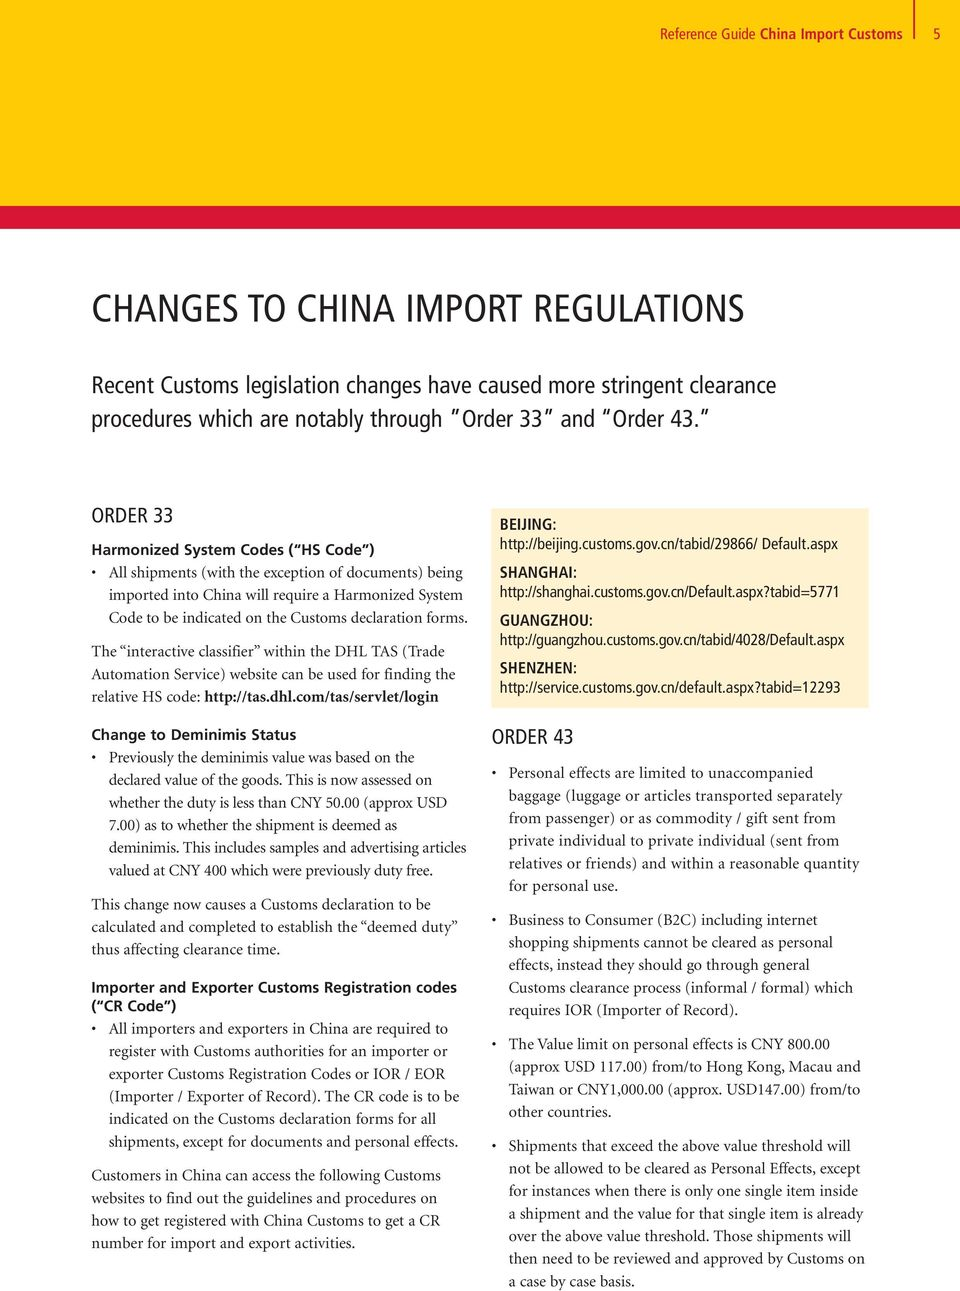 Reference Guide Guide CustomsPdf CustomsPdf China China Reference QBtrxshdC